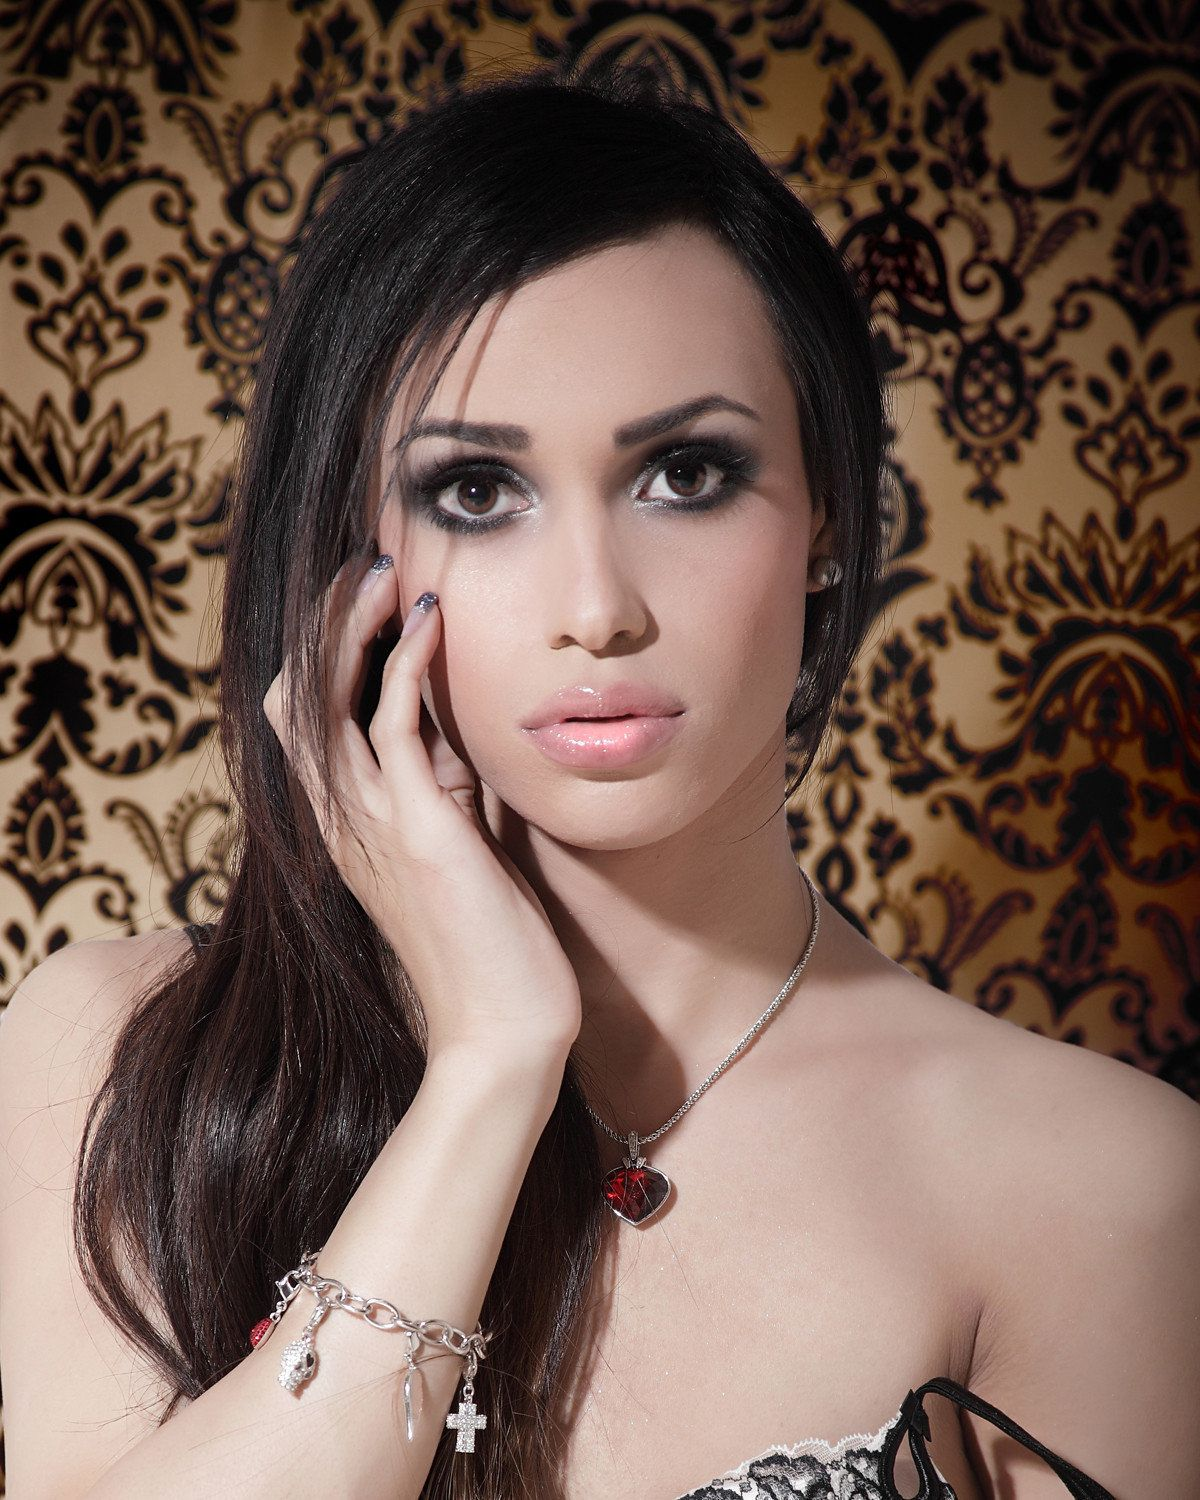 Free Sex Chat Rooms With Egyptian Girls